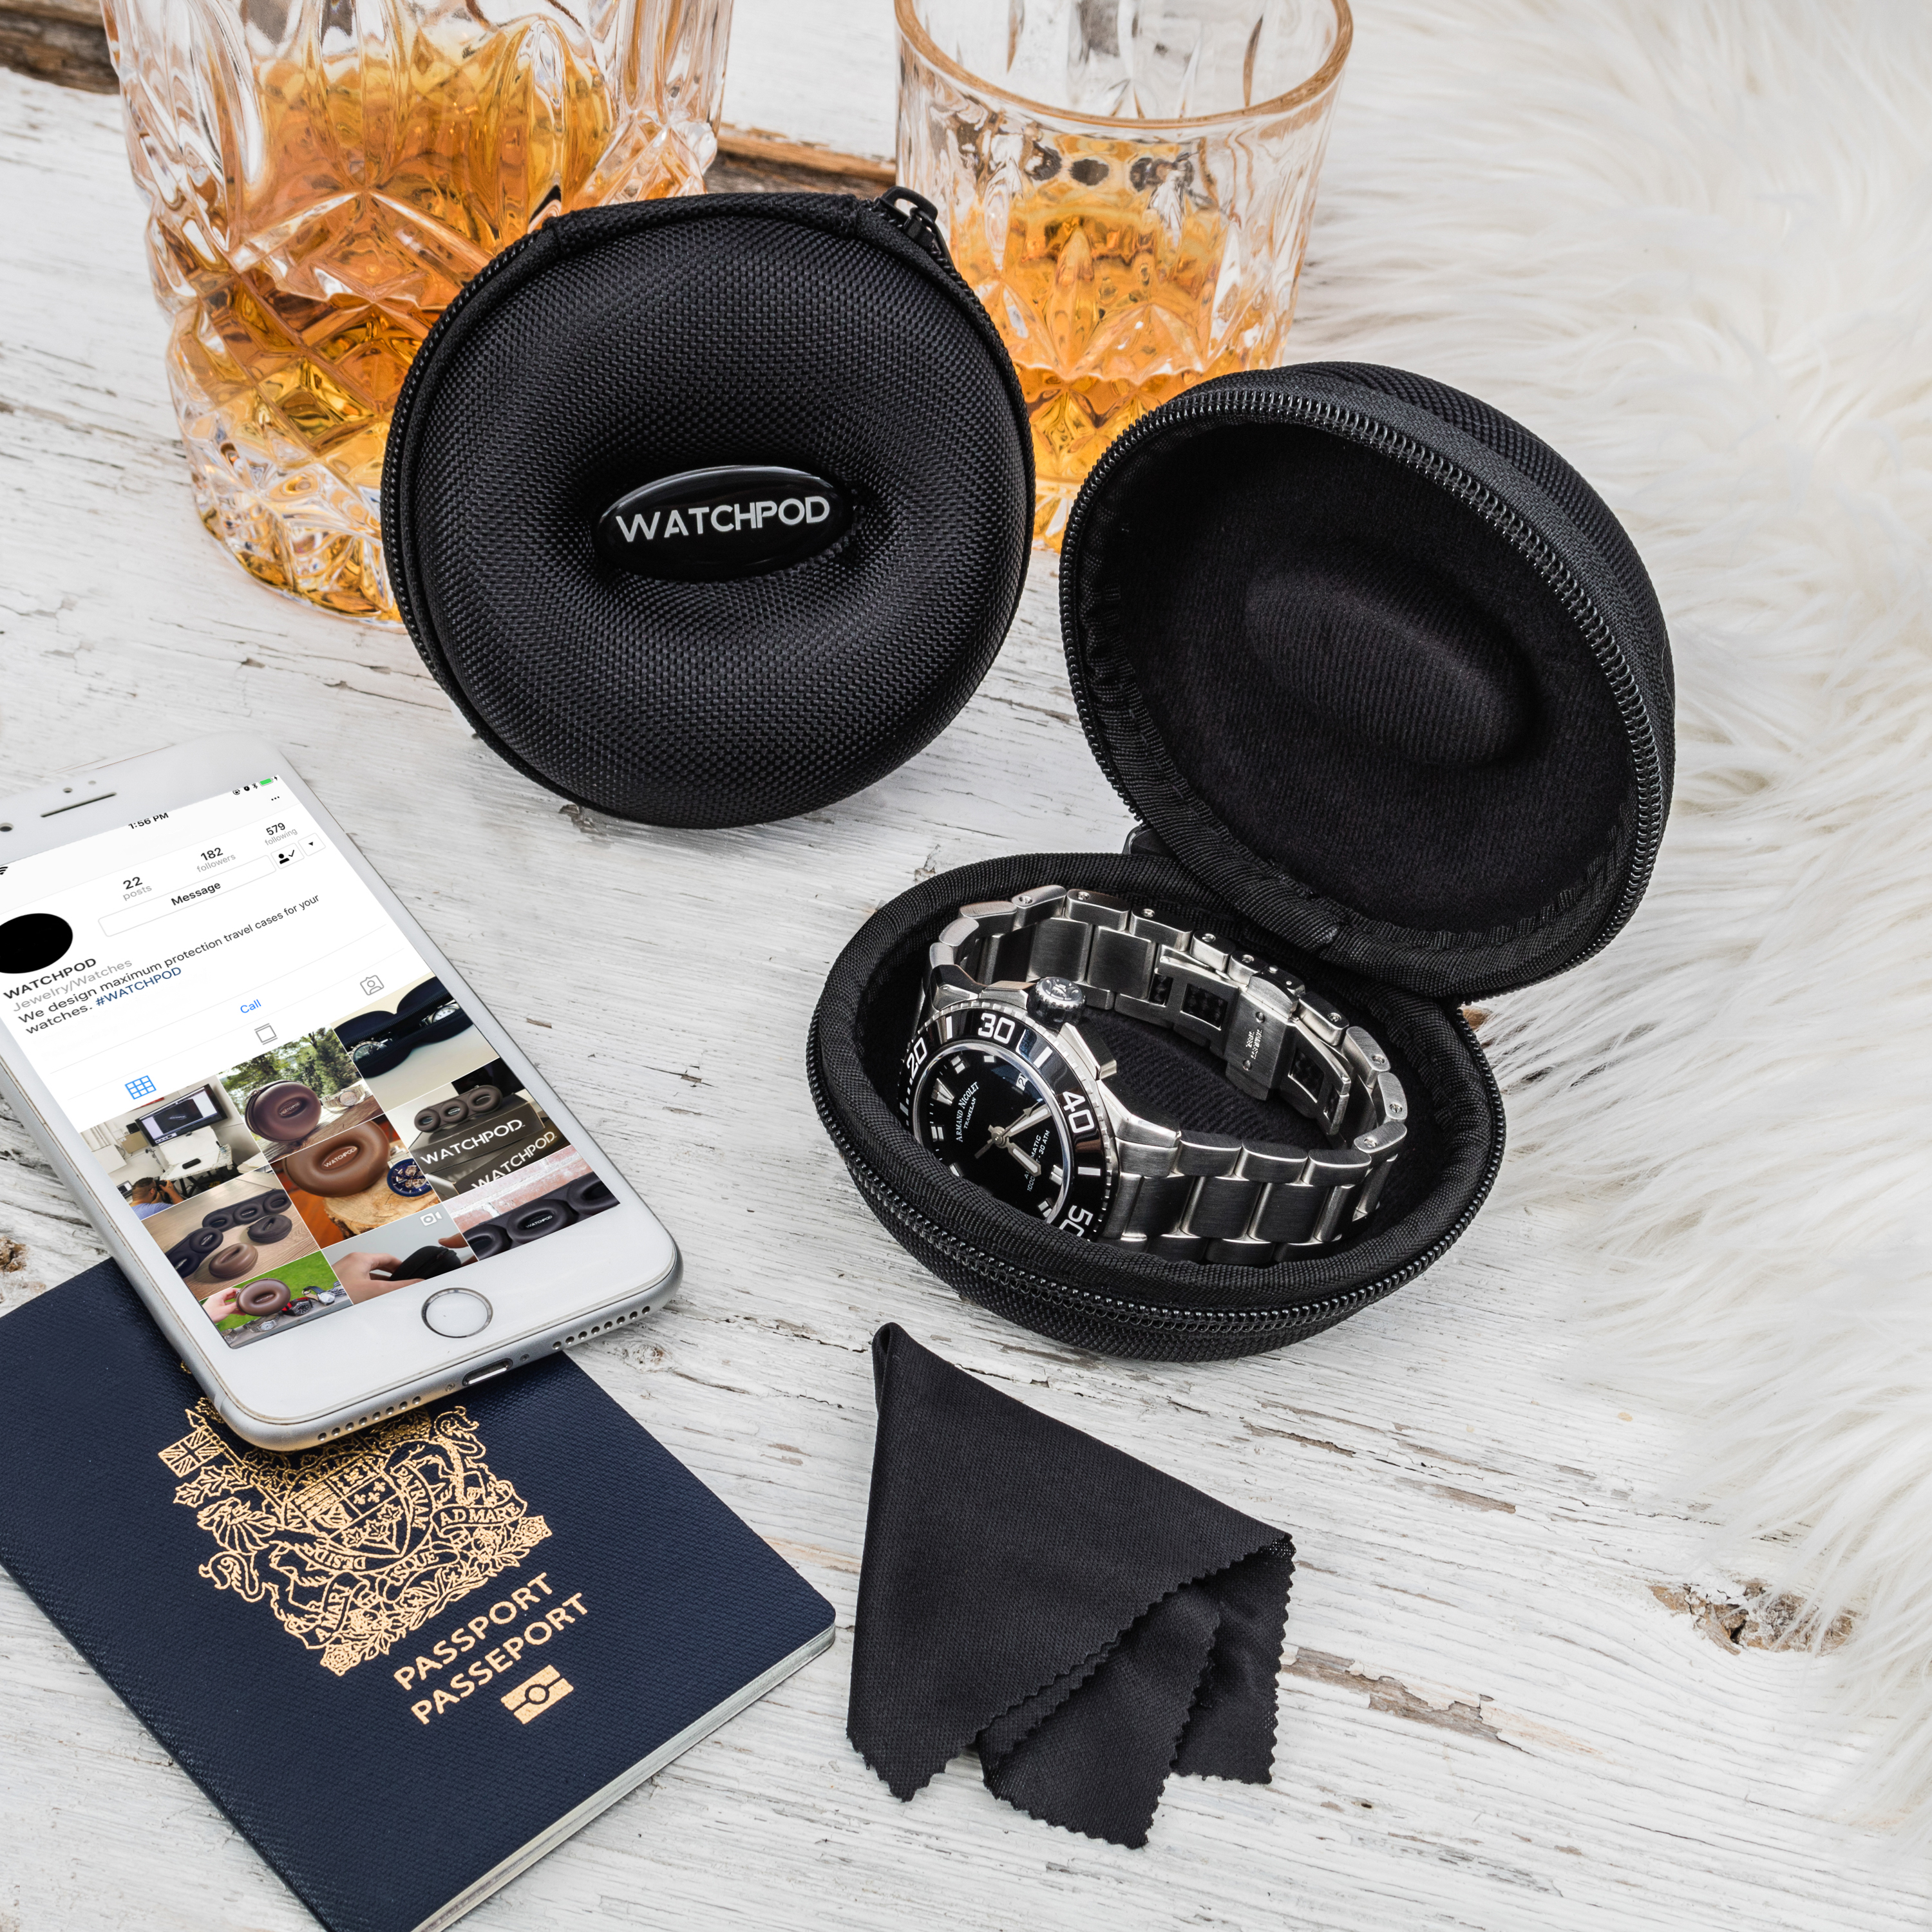 How To Travel With Your Watches